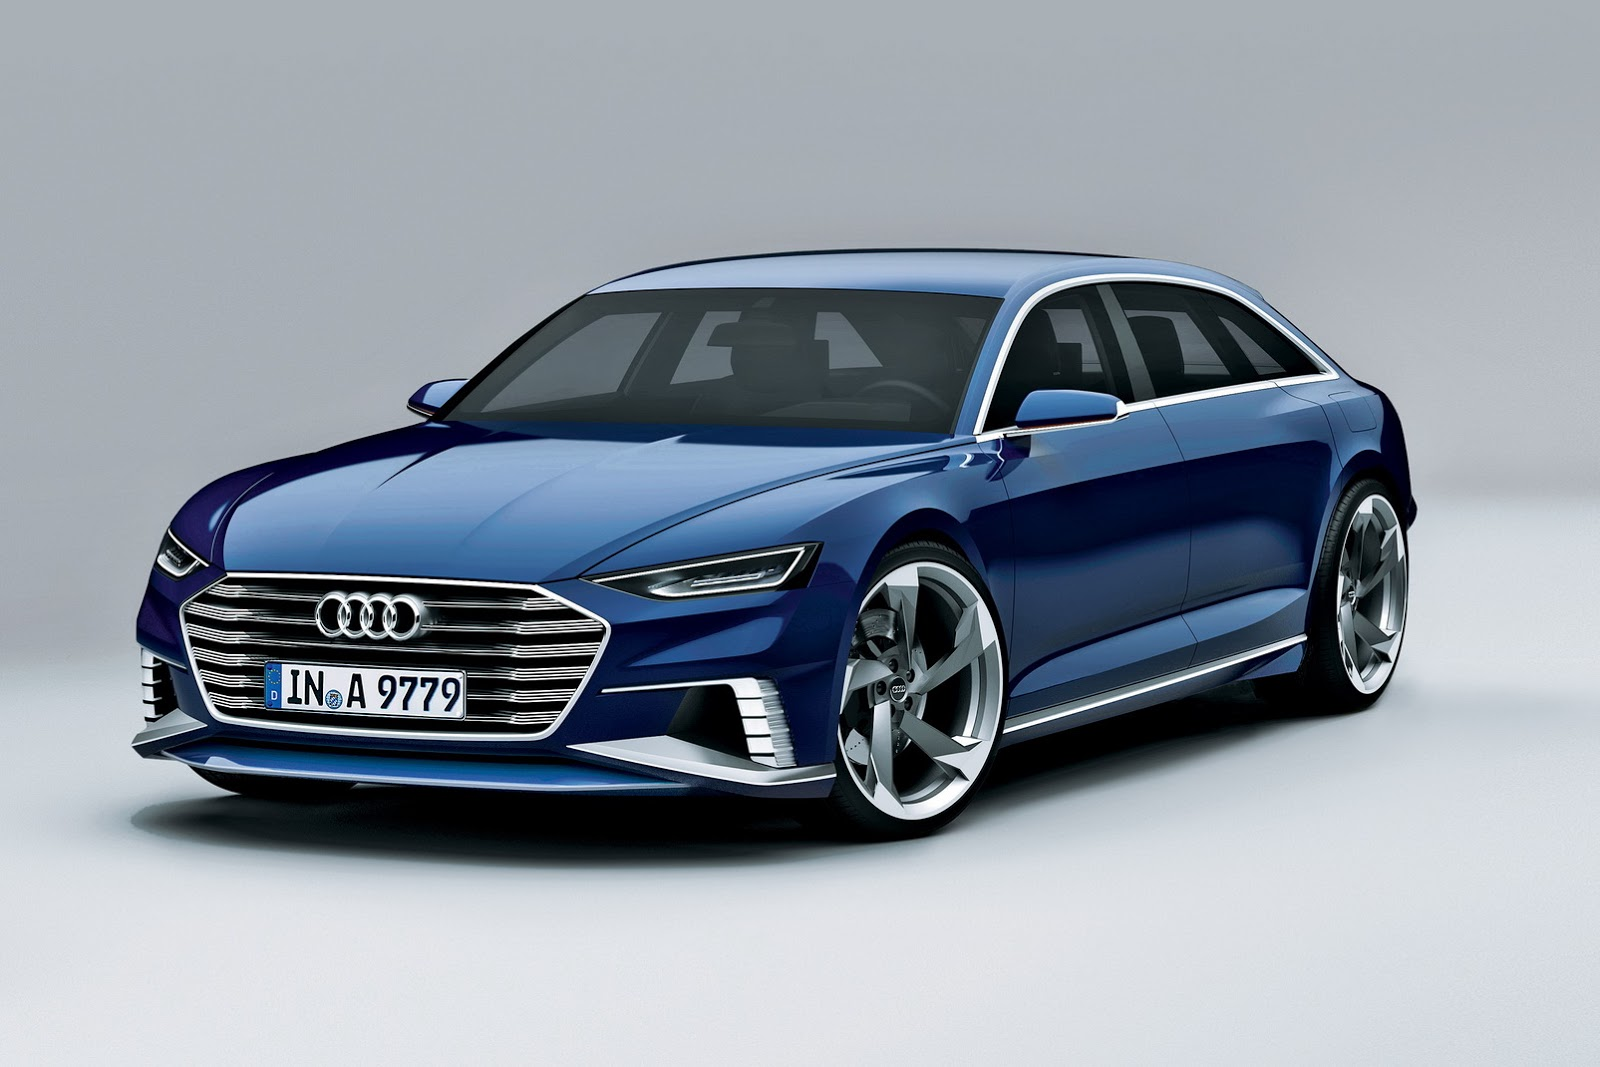 Home Supercar News Audi Audi Prologue Avant to Debut at Geneva Motor ...